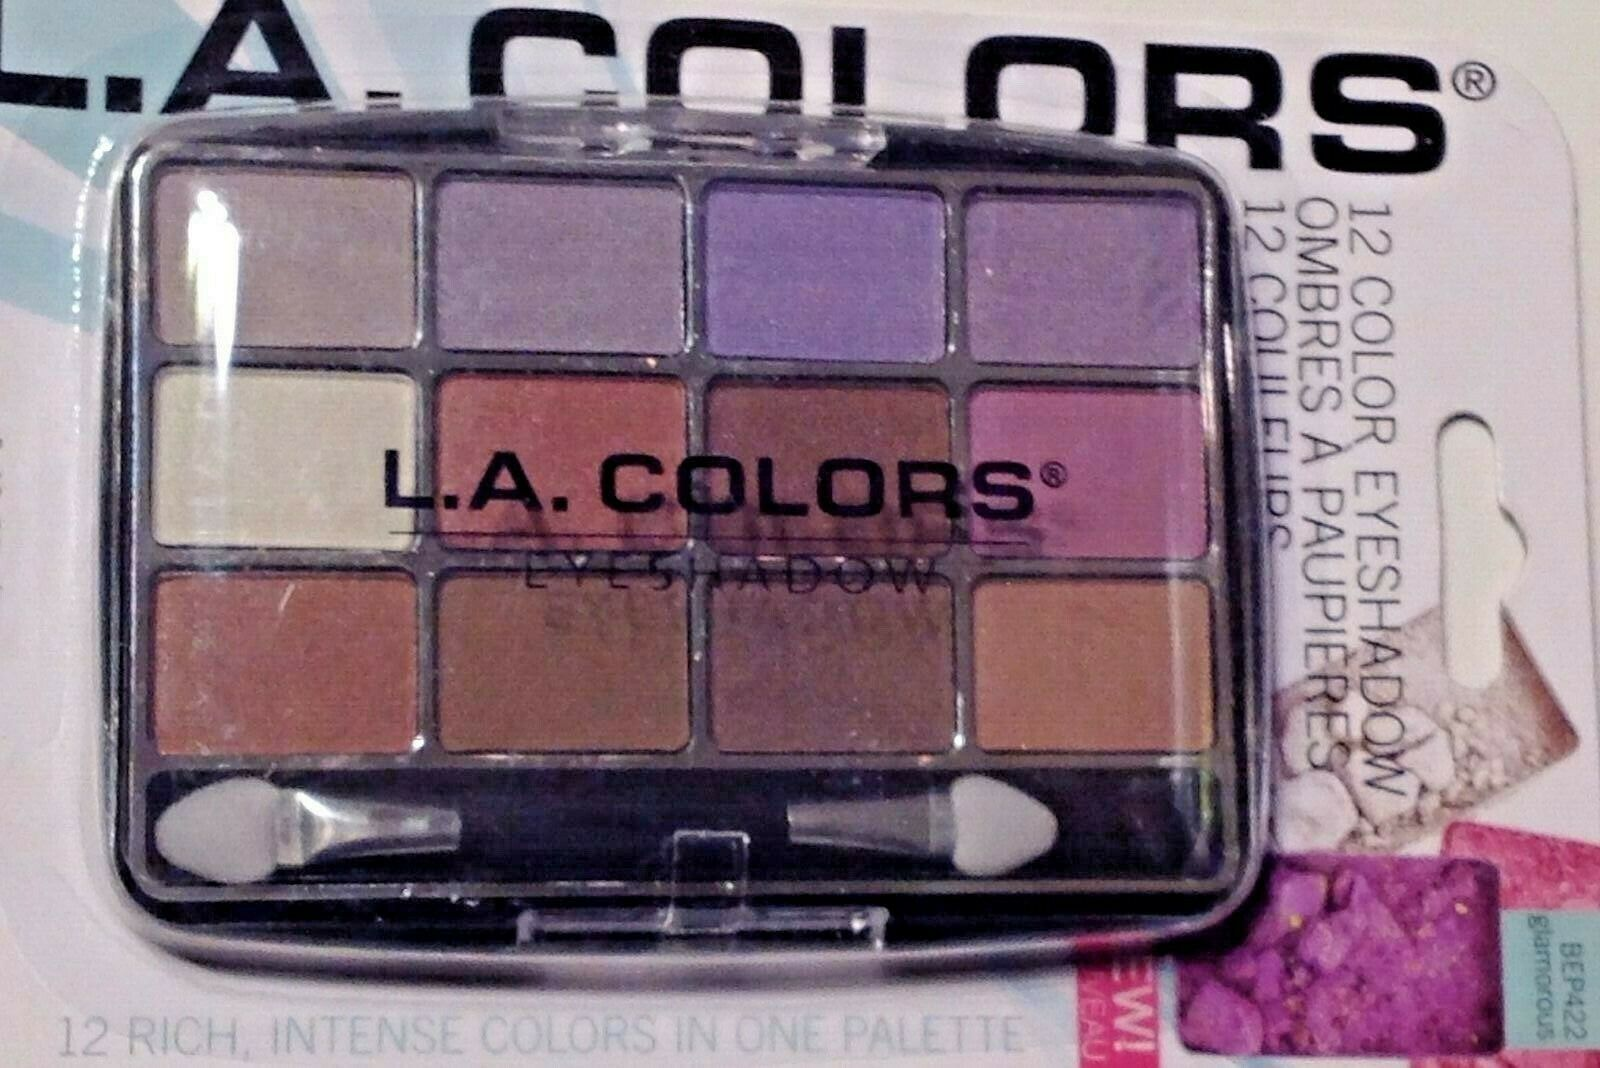 Primary image for LA Colors Powder Eyeshadow 12 Shades Glamorous & Applicator Brush